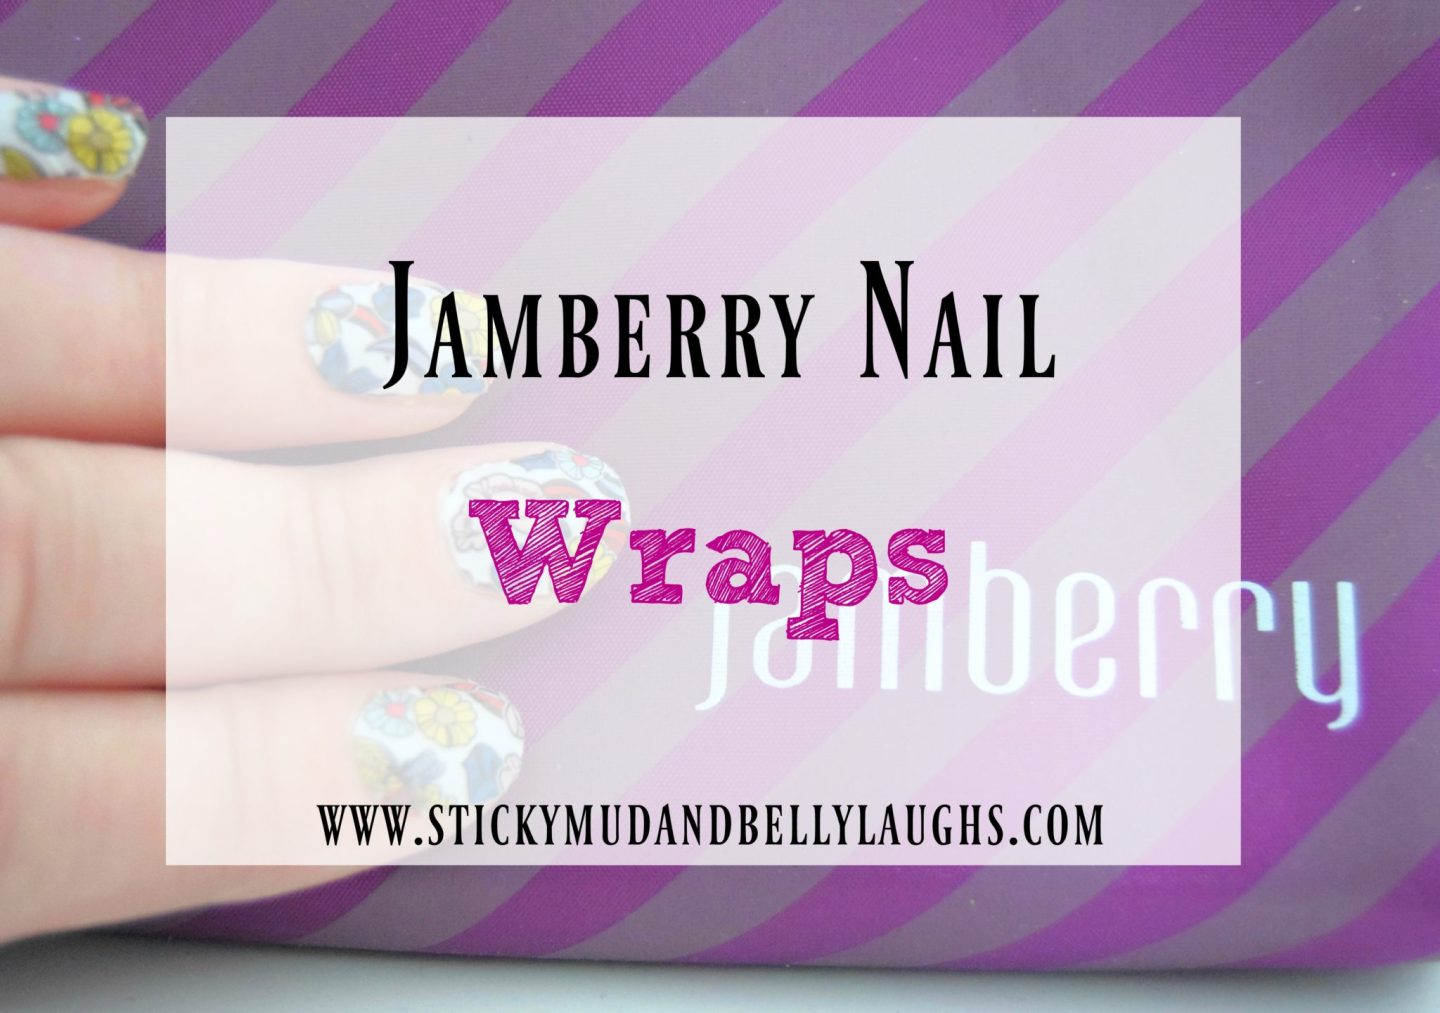 Nailing It With Jamberry - Sticky Mud and Belly Laughs